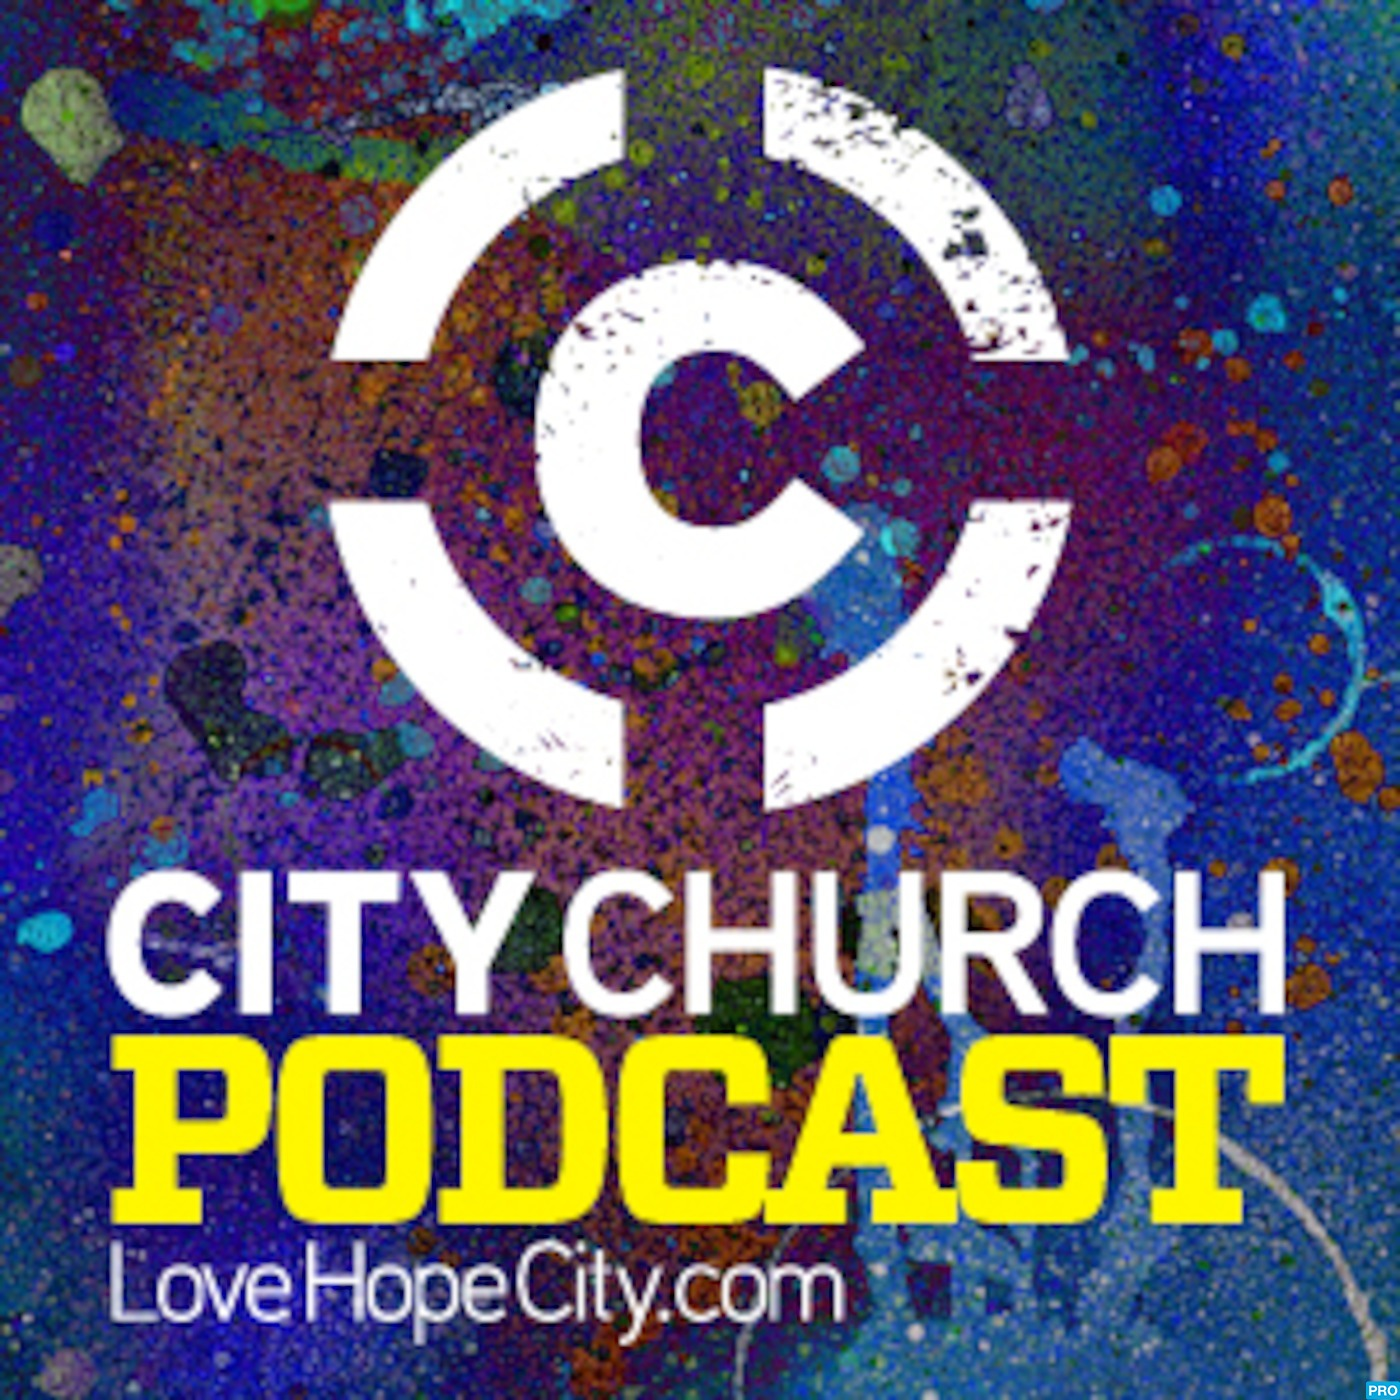 City Church (LoveHopeCity.com)'s Podcast